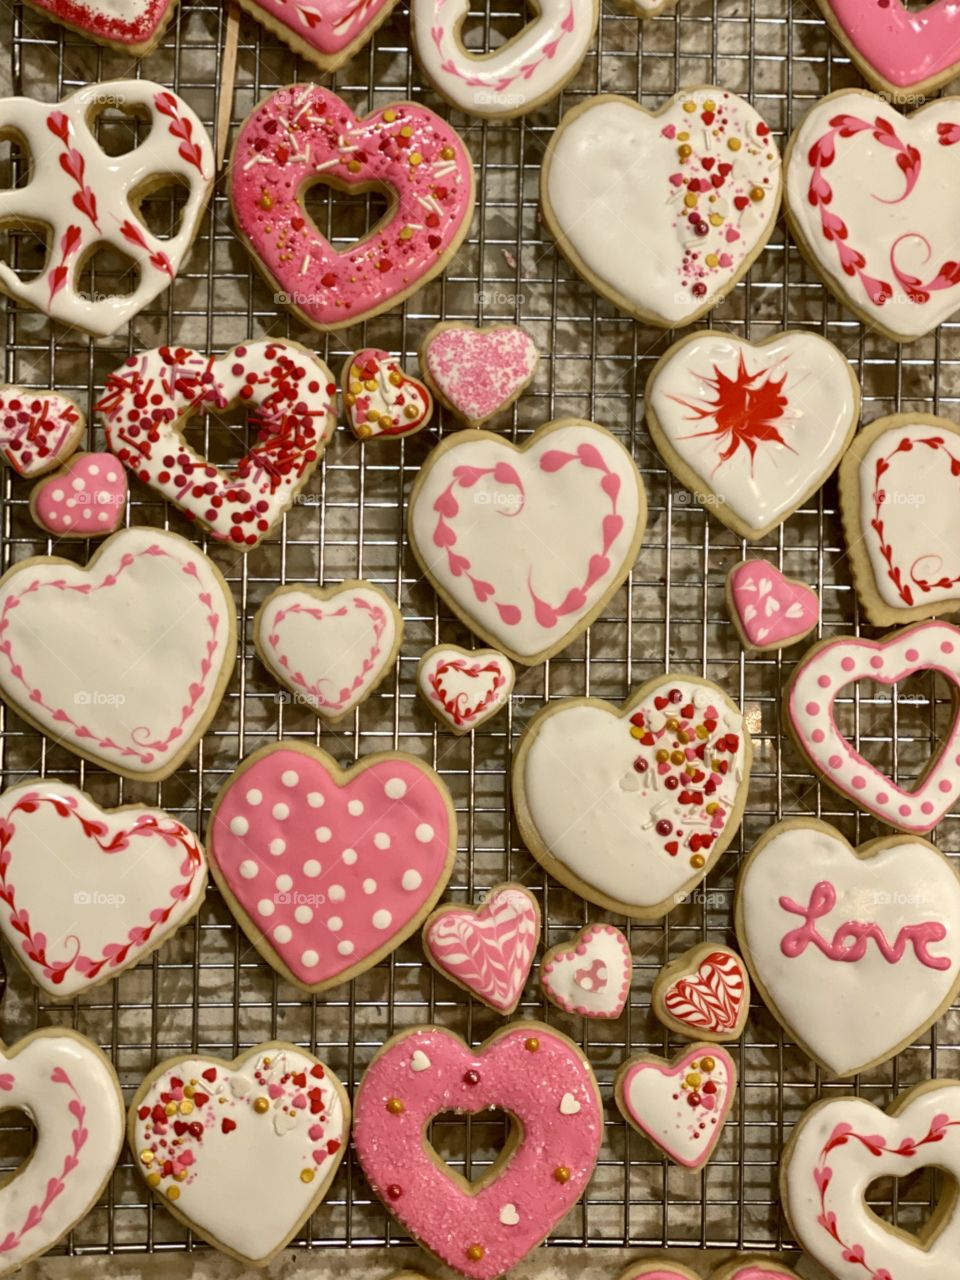 A festive array of Valentine's Day cookies